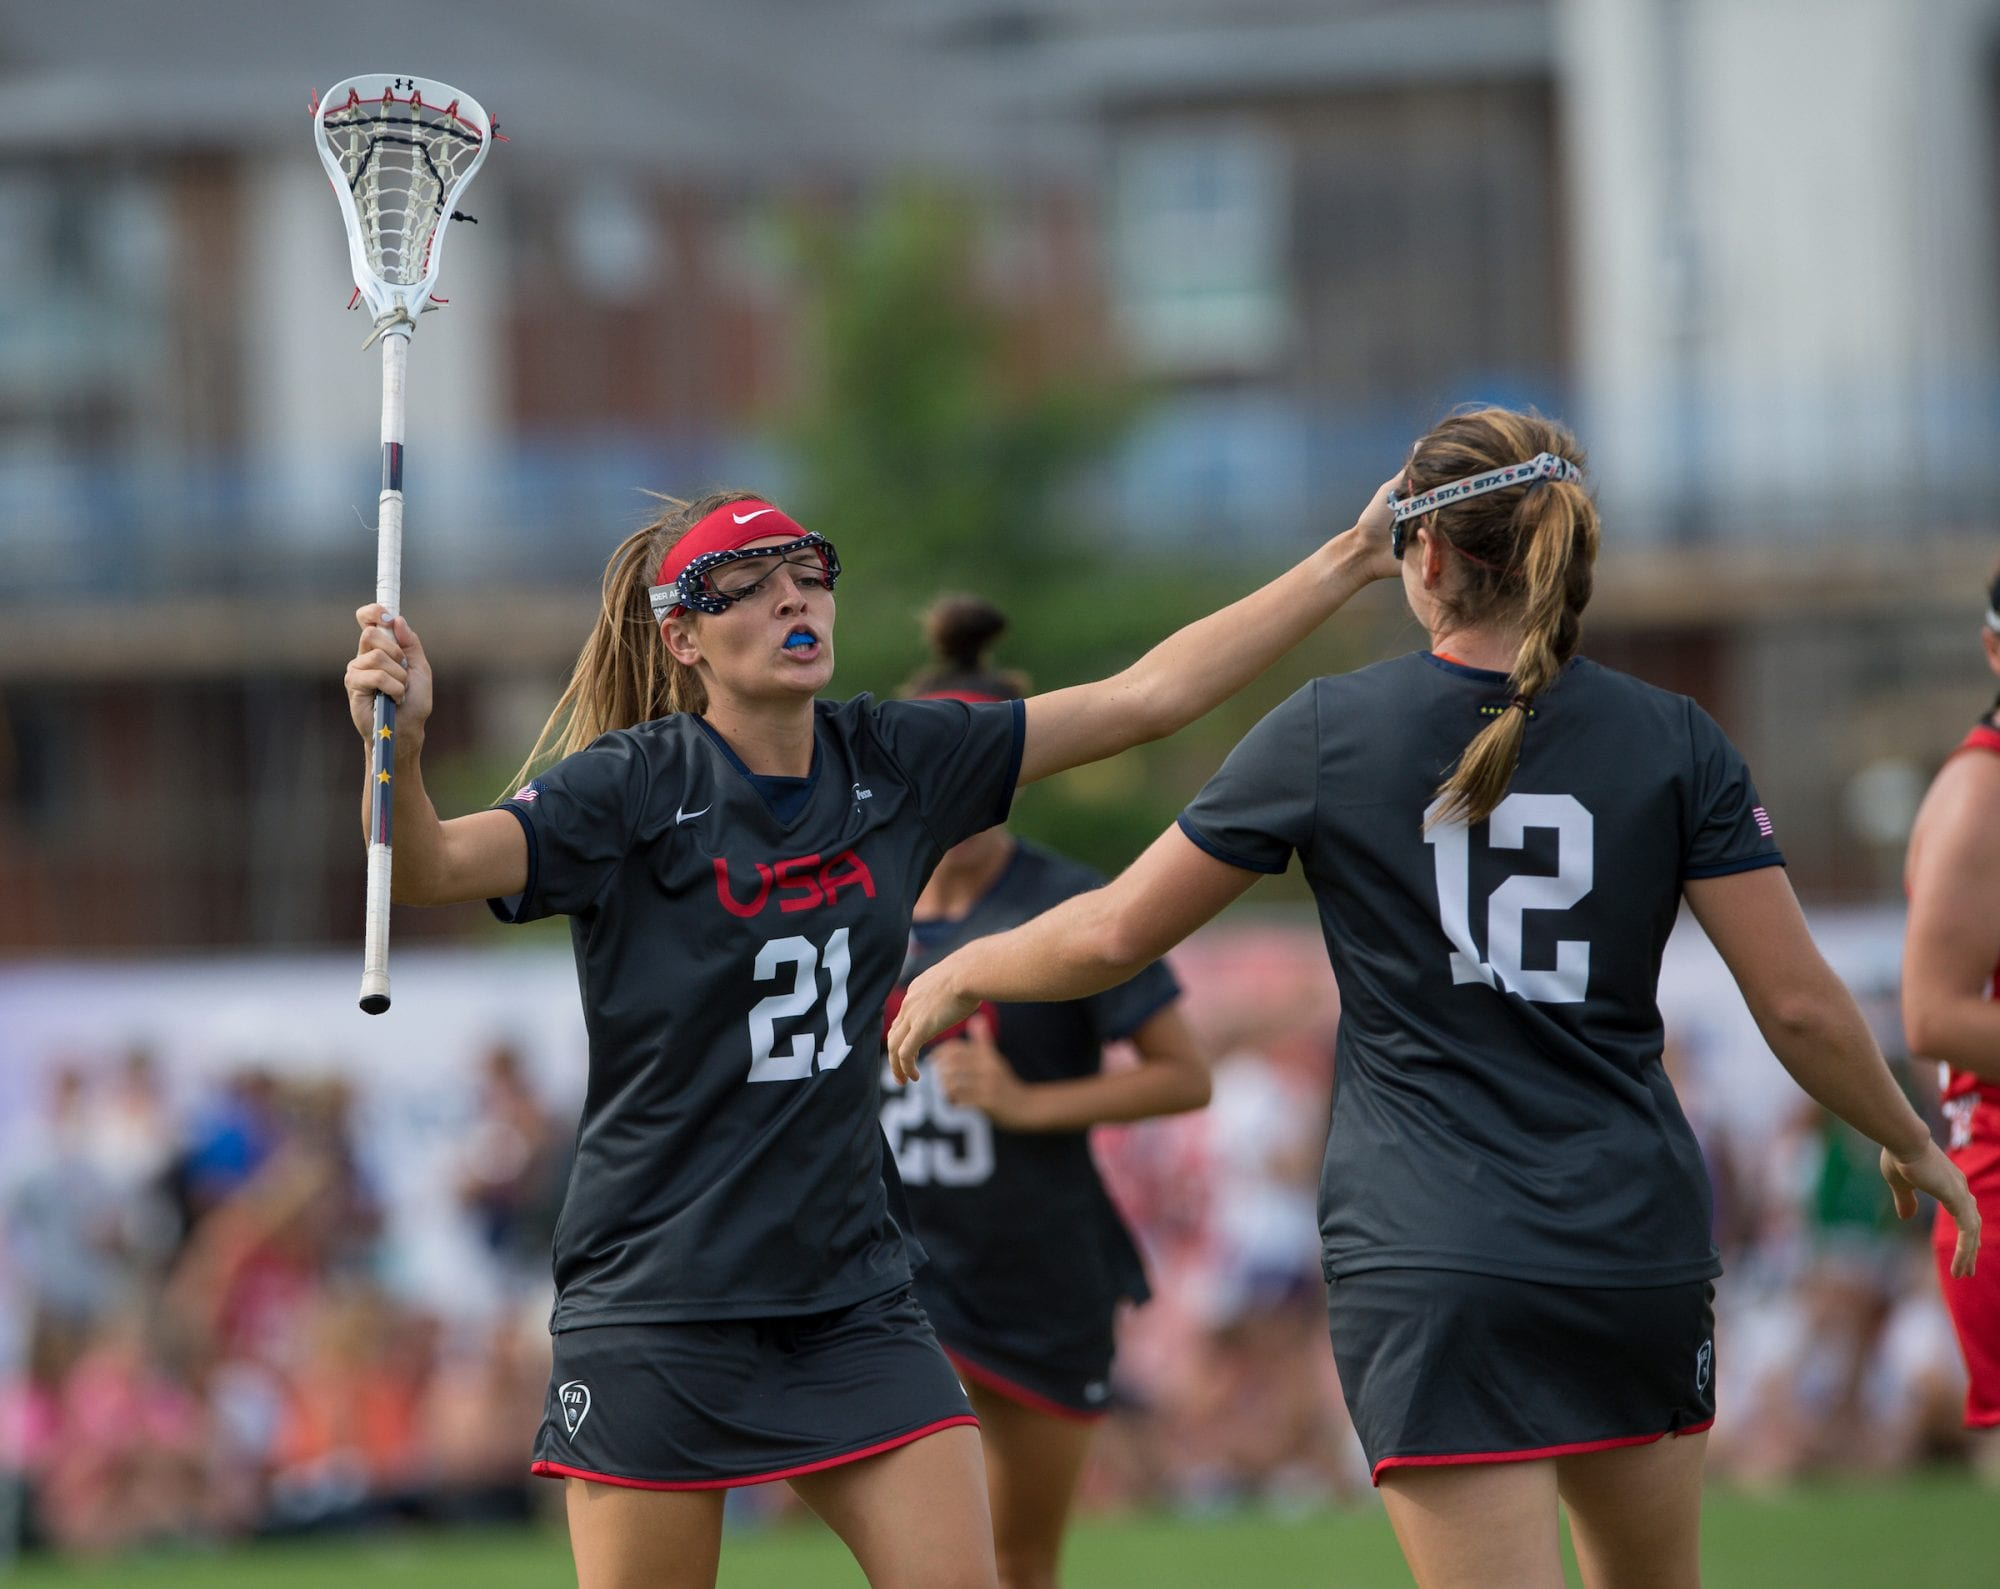 USA's Taylor Cummings celebrates with scorer Kayla Treanor at the 2017 FIL Rathbones Women's Lacrosse World Cup, at Surrey Sports Park, Guildford, Surrey, UK, 18th July 2017.